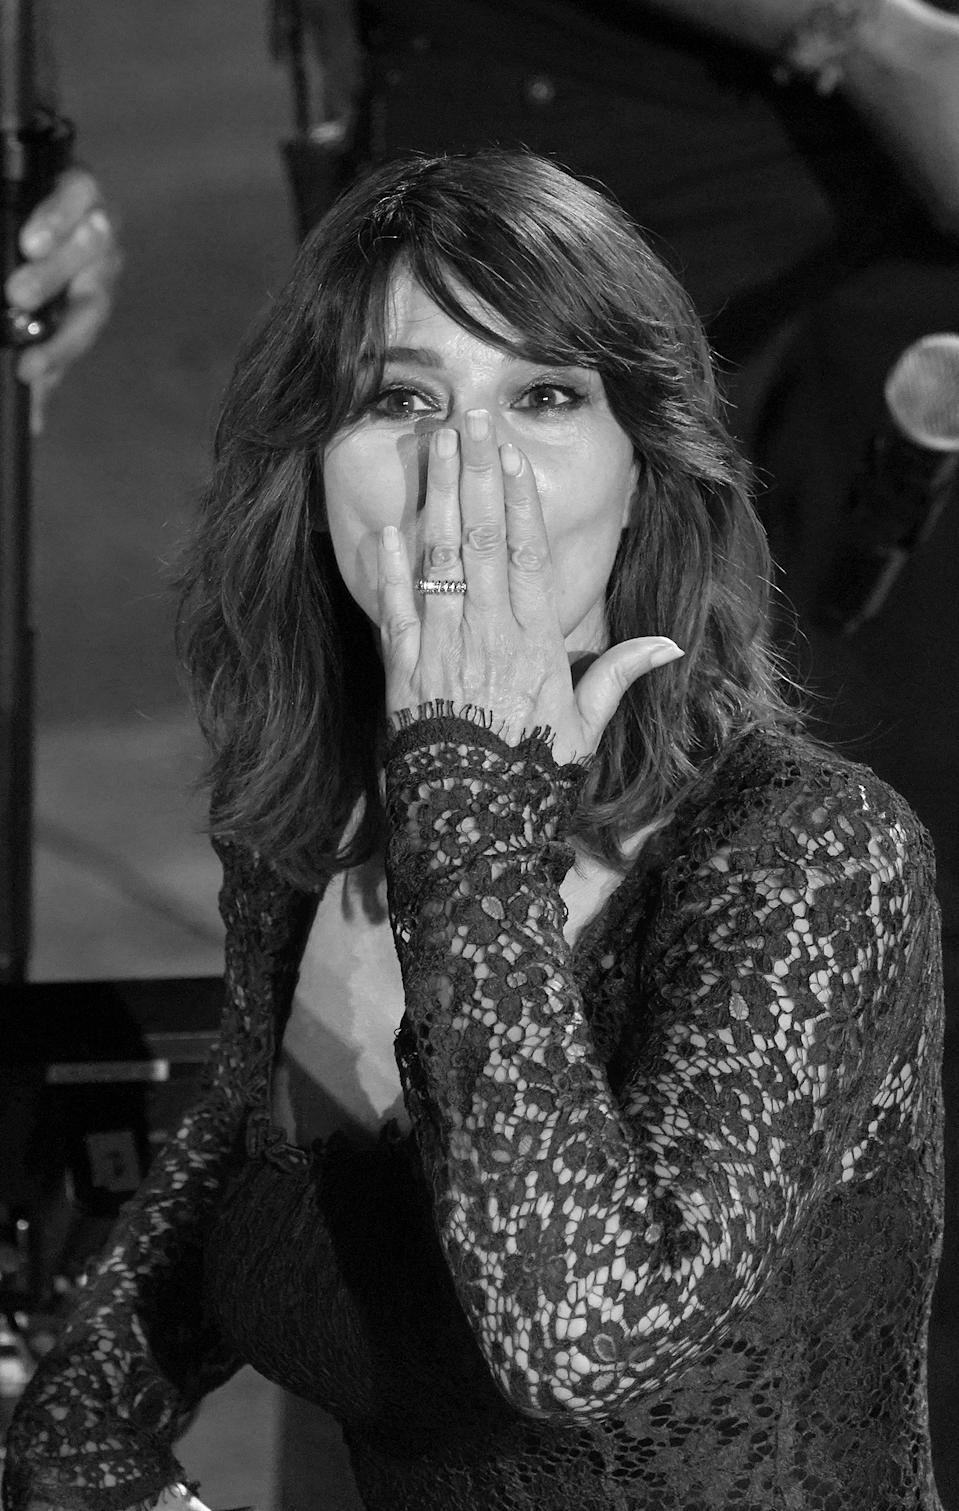 (EDITOR'S NOTE: Image was converted to black and white) Monica Bellucci attends the ceremony in memory of Ennio Morricone in the suggestive ancient theater of Taormina with the presentation of the film by Giuseppe Tornatore ''Devotion''. 66th Taorminafilmfest, Taormina (ME), Italy - July 18, 2020 (Photo by Gabriele Maricchiolo/NurPhoto via Getty Images)